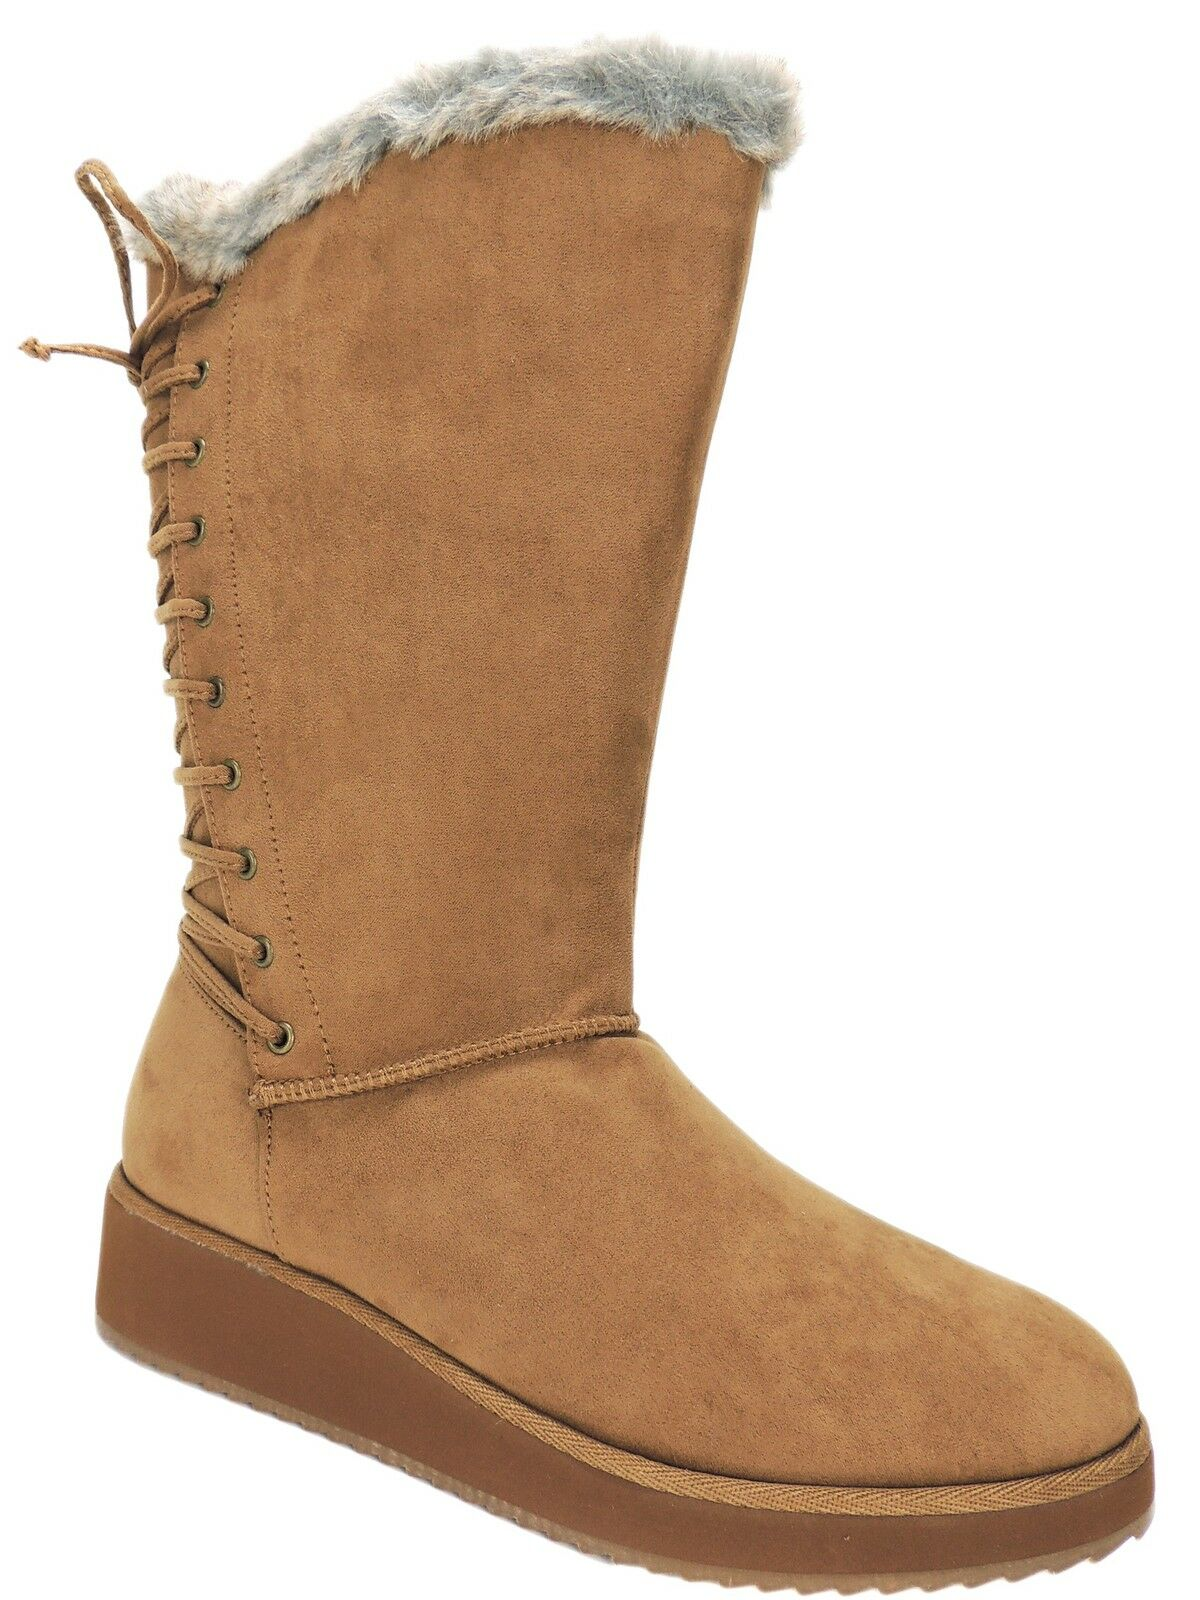 Rampage Women's Perie Cold Weather Winter Boots Camel Micro Suede Size 7.5 M